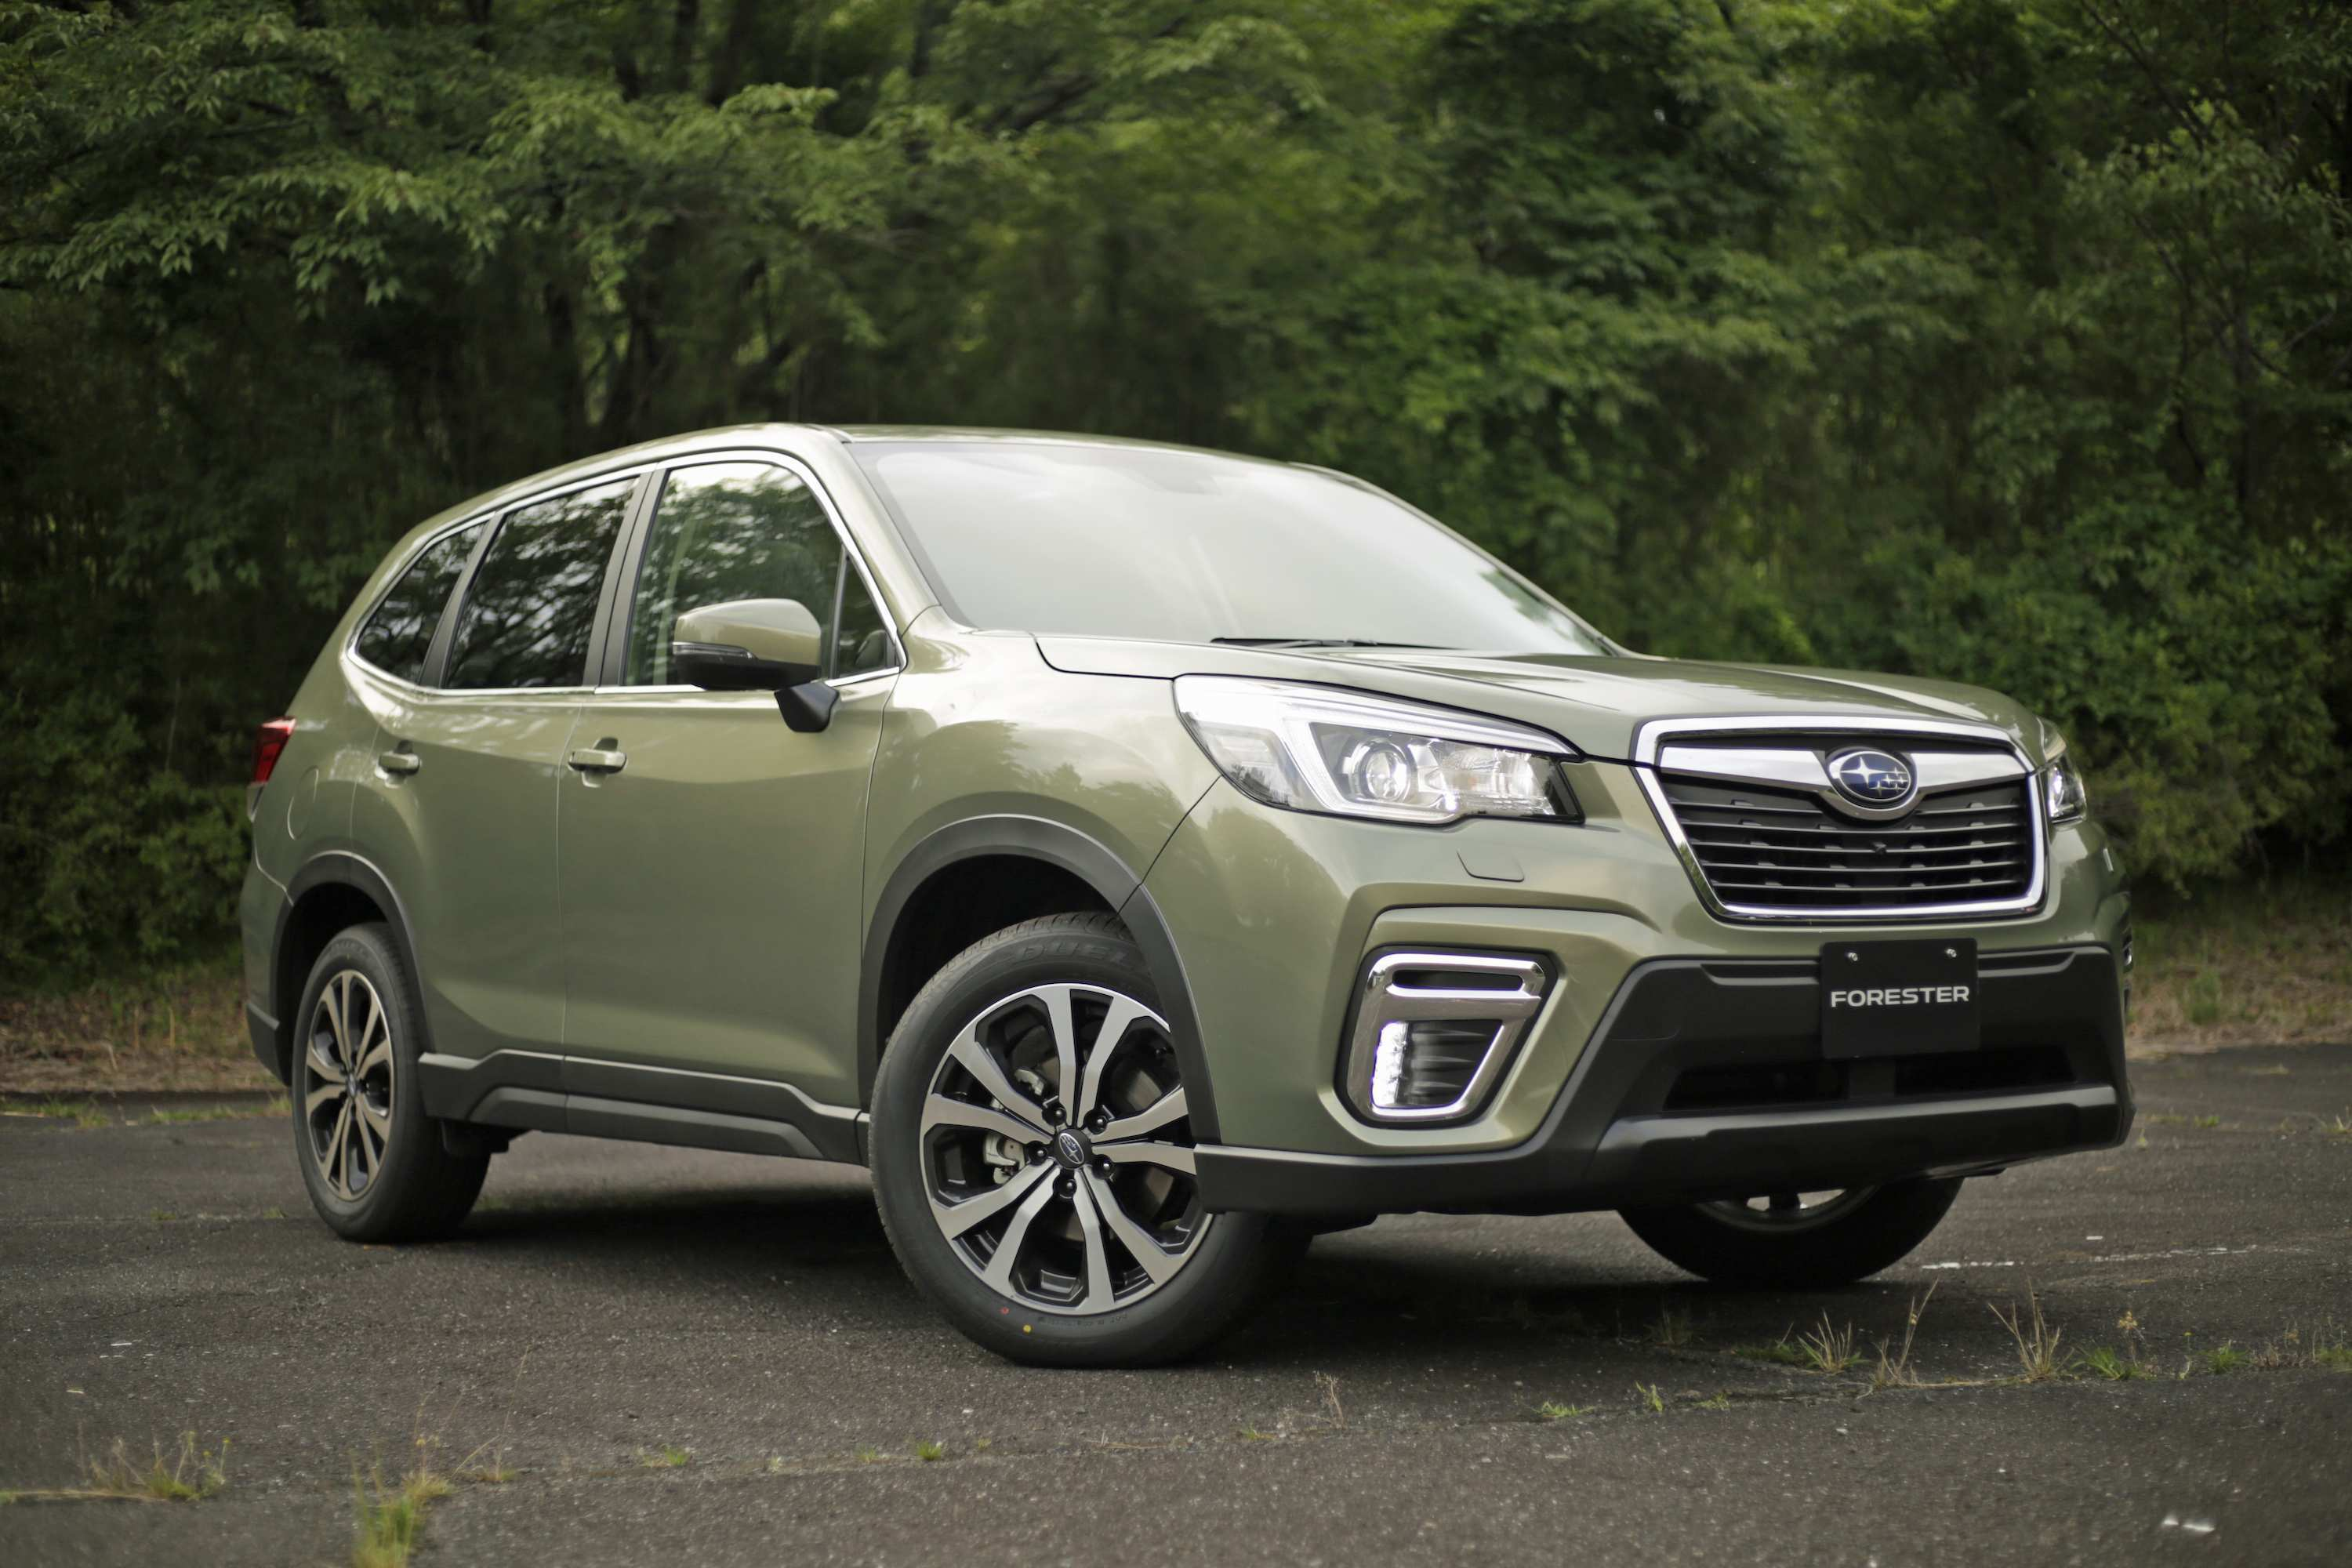 74 Great 2019 Subaru Forester Design New Review for 2019 Subaru Forester Design